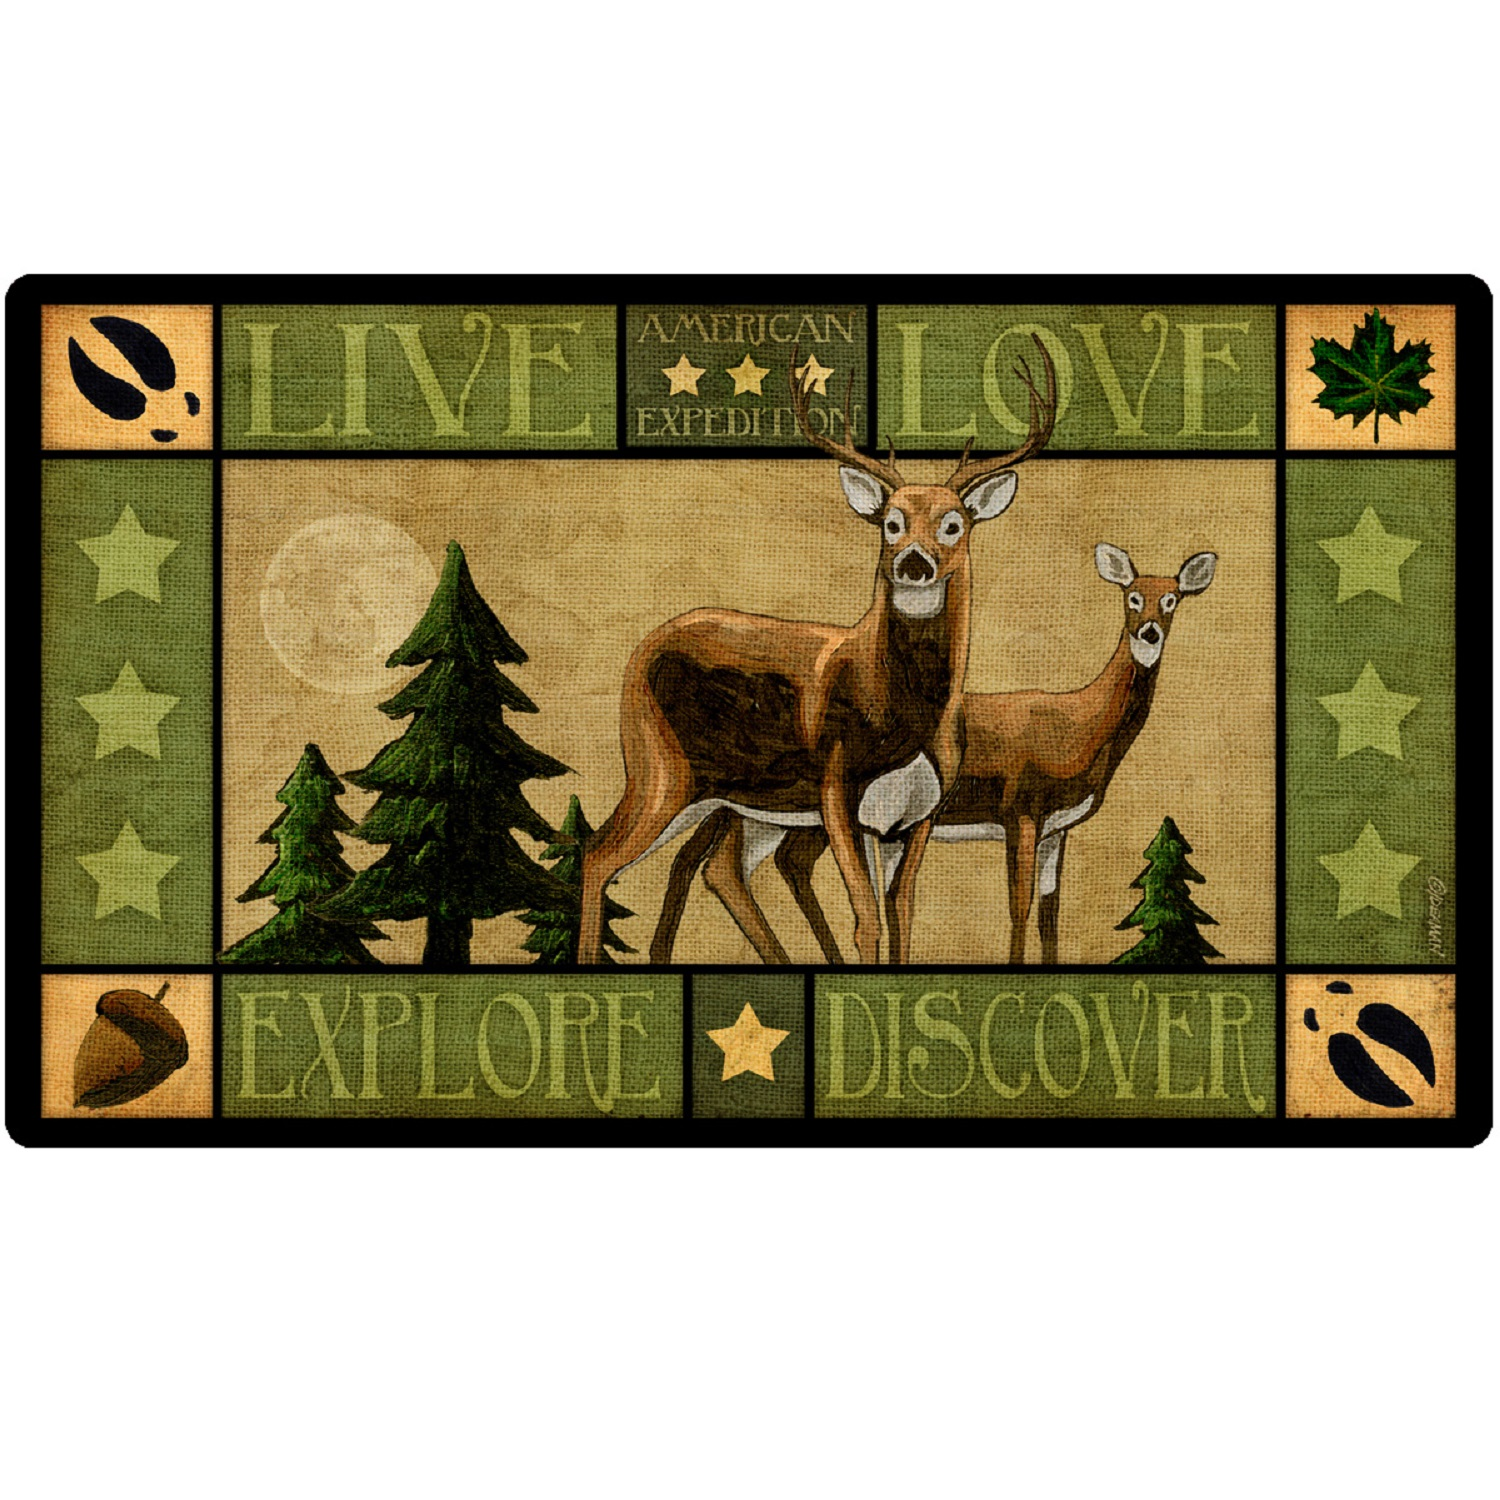 American Expedition Cutting Board - Lodge Series Deer